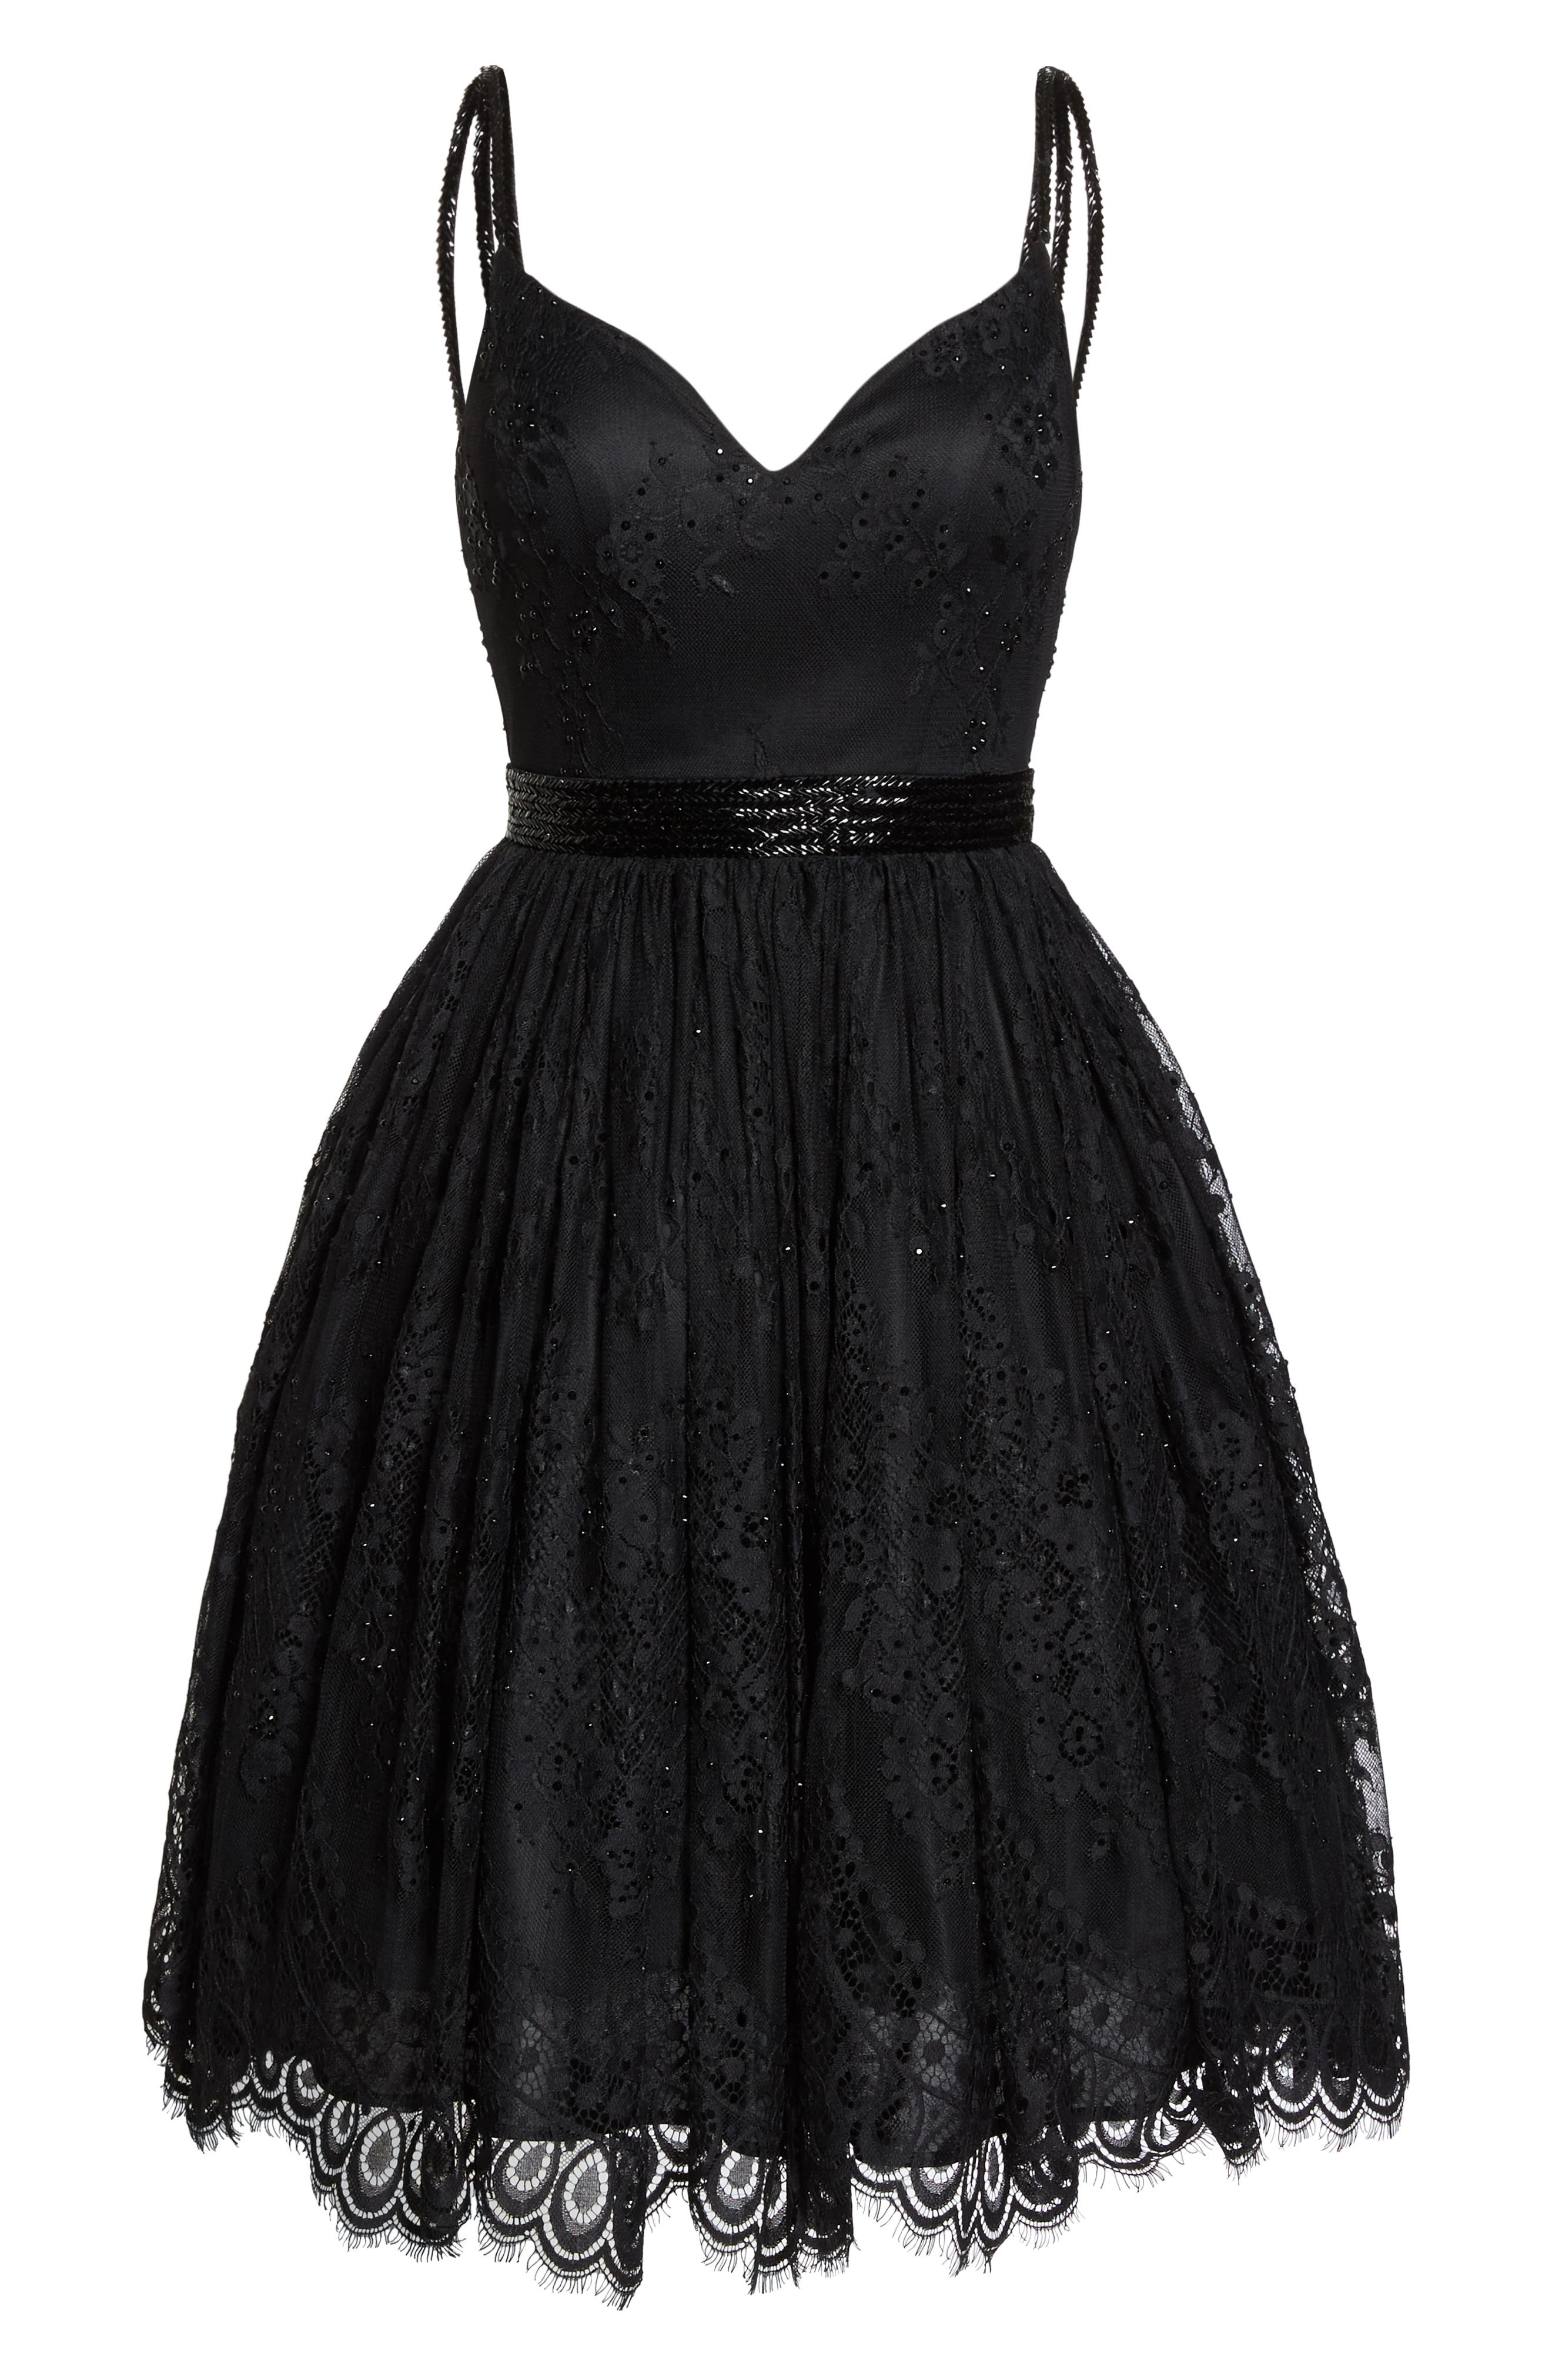 MAC DUGGAL, Sweetheart Neck Lace Party Dress, Alternate thumbnail 7, color, BLACK